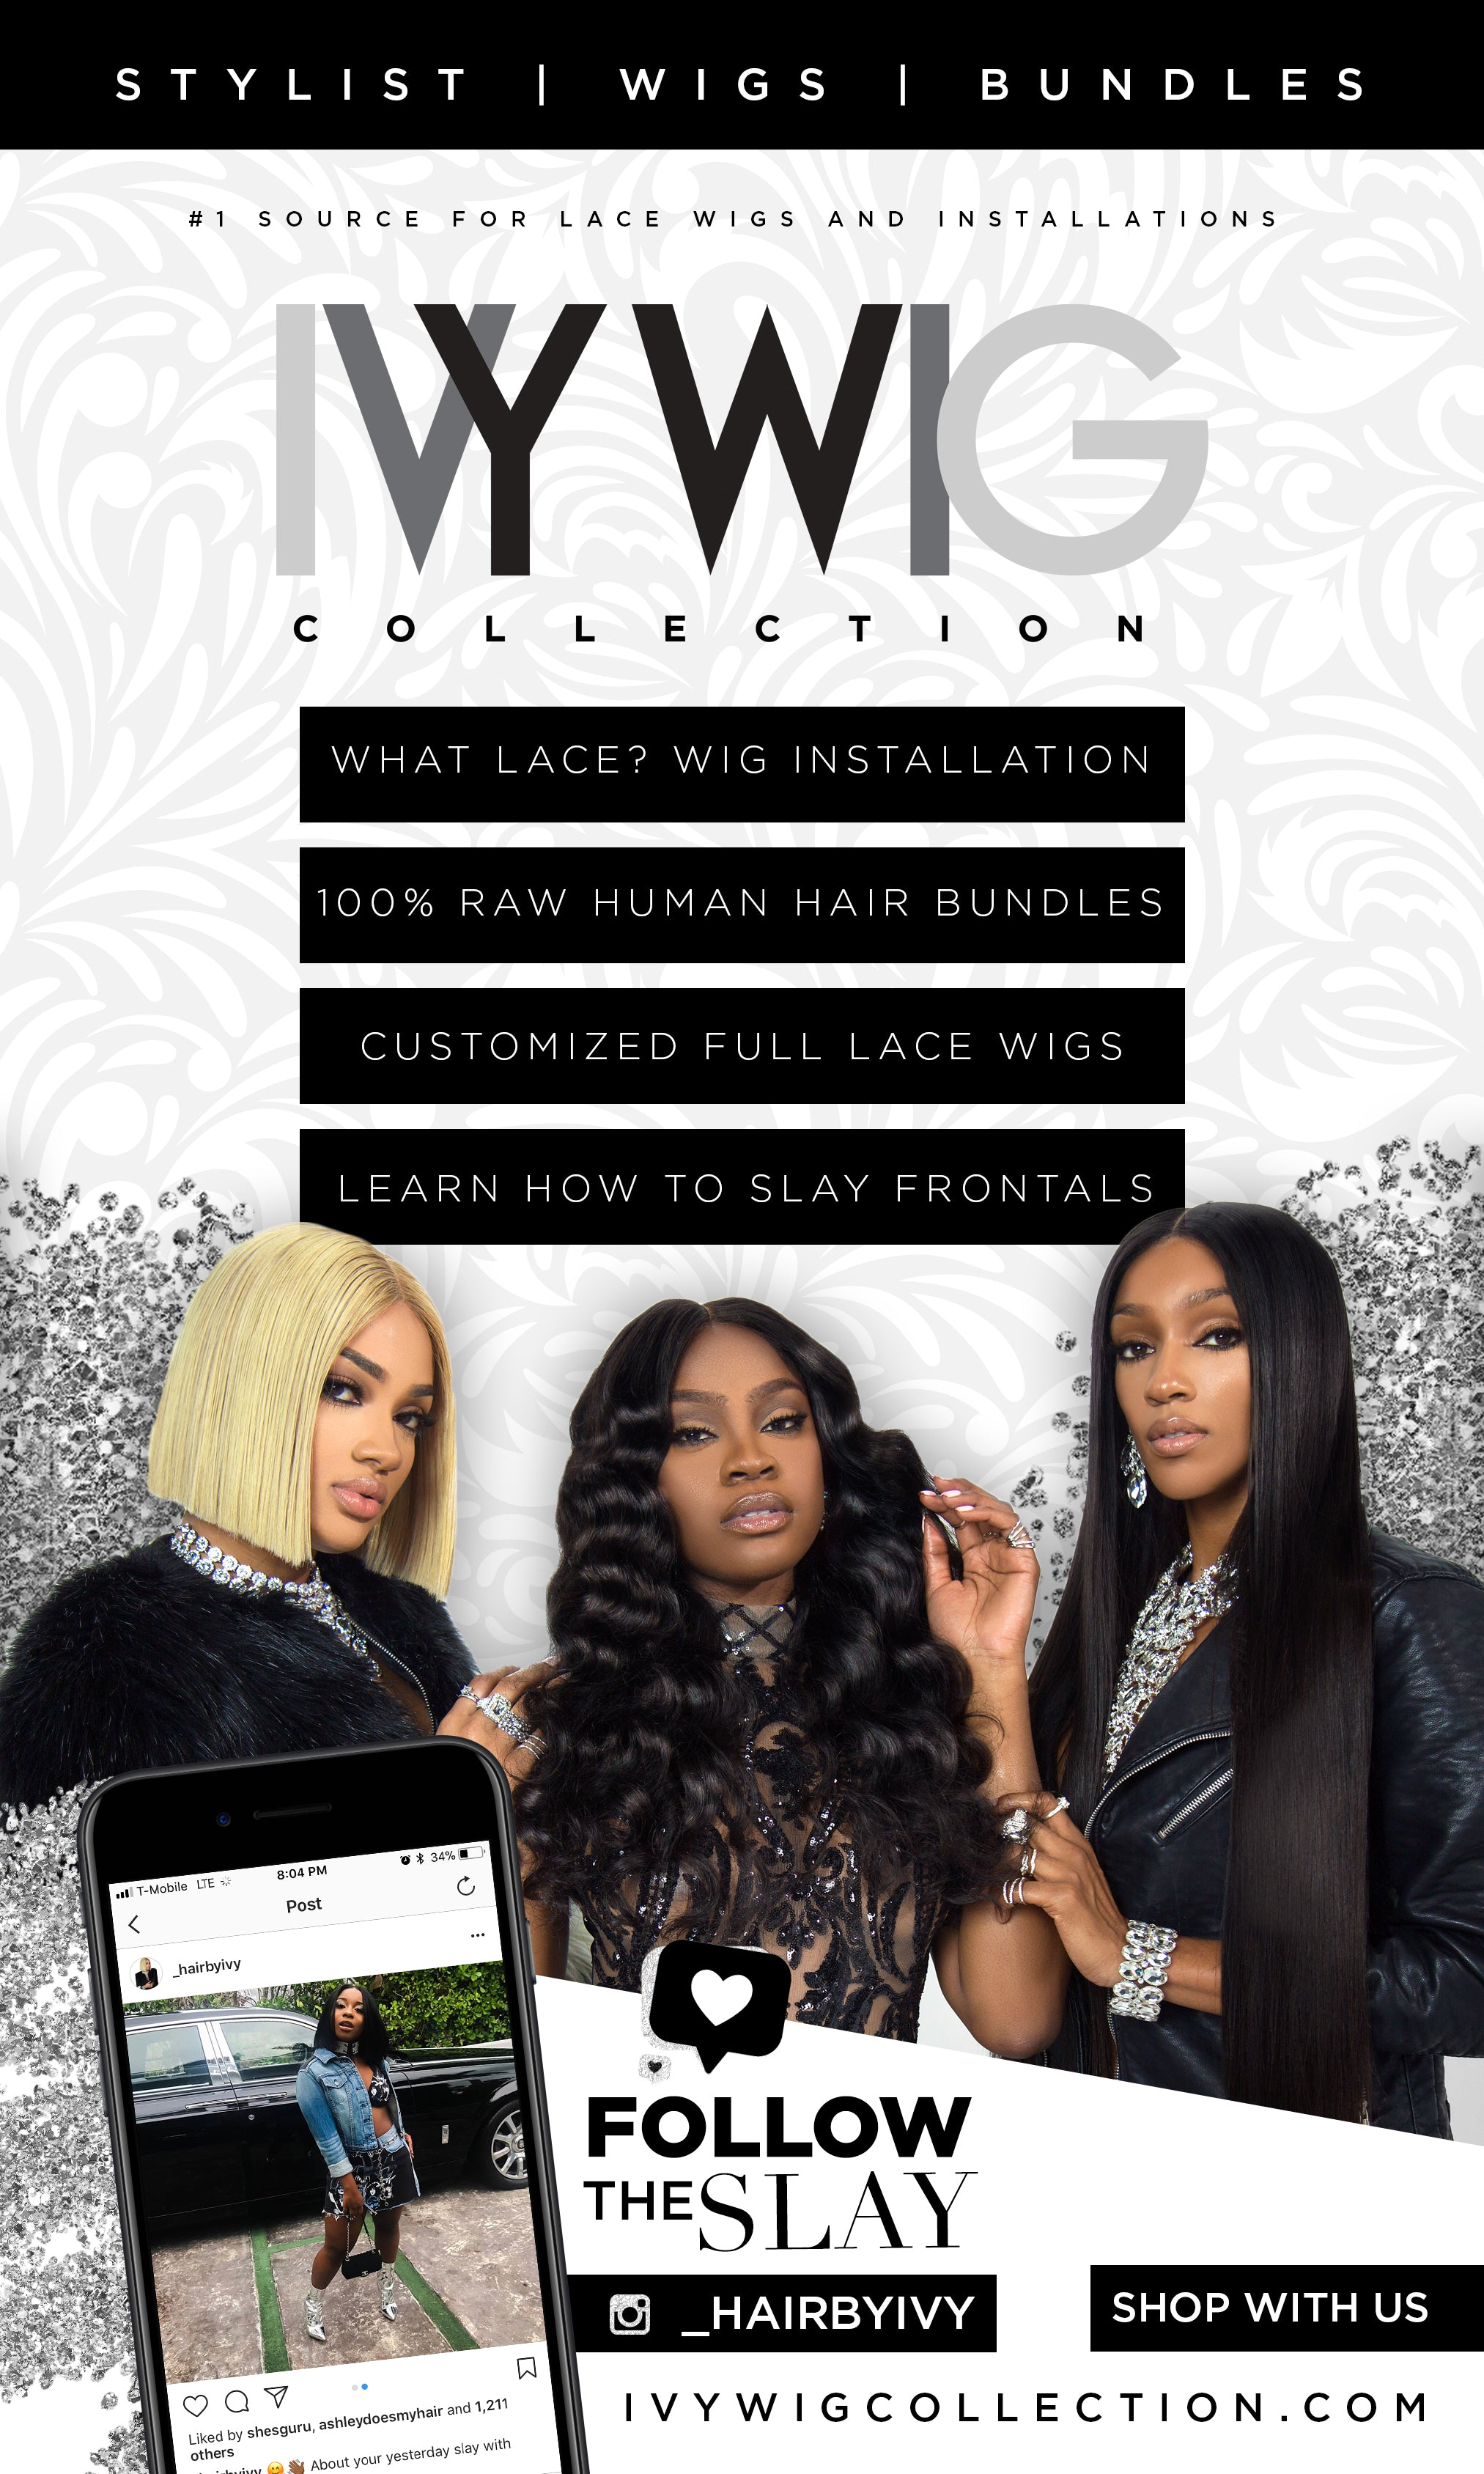 Ivy Wig Collection